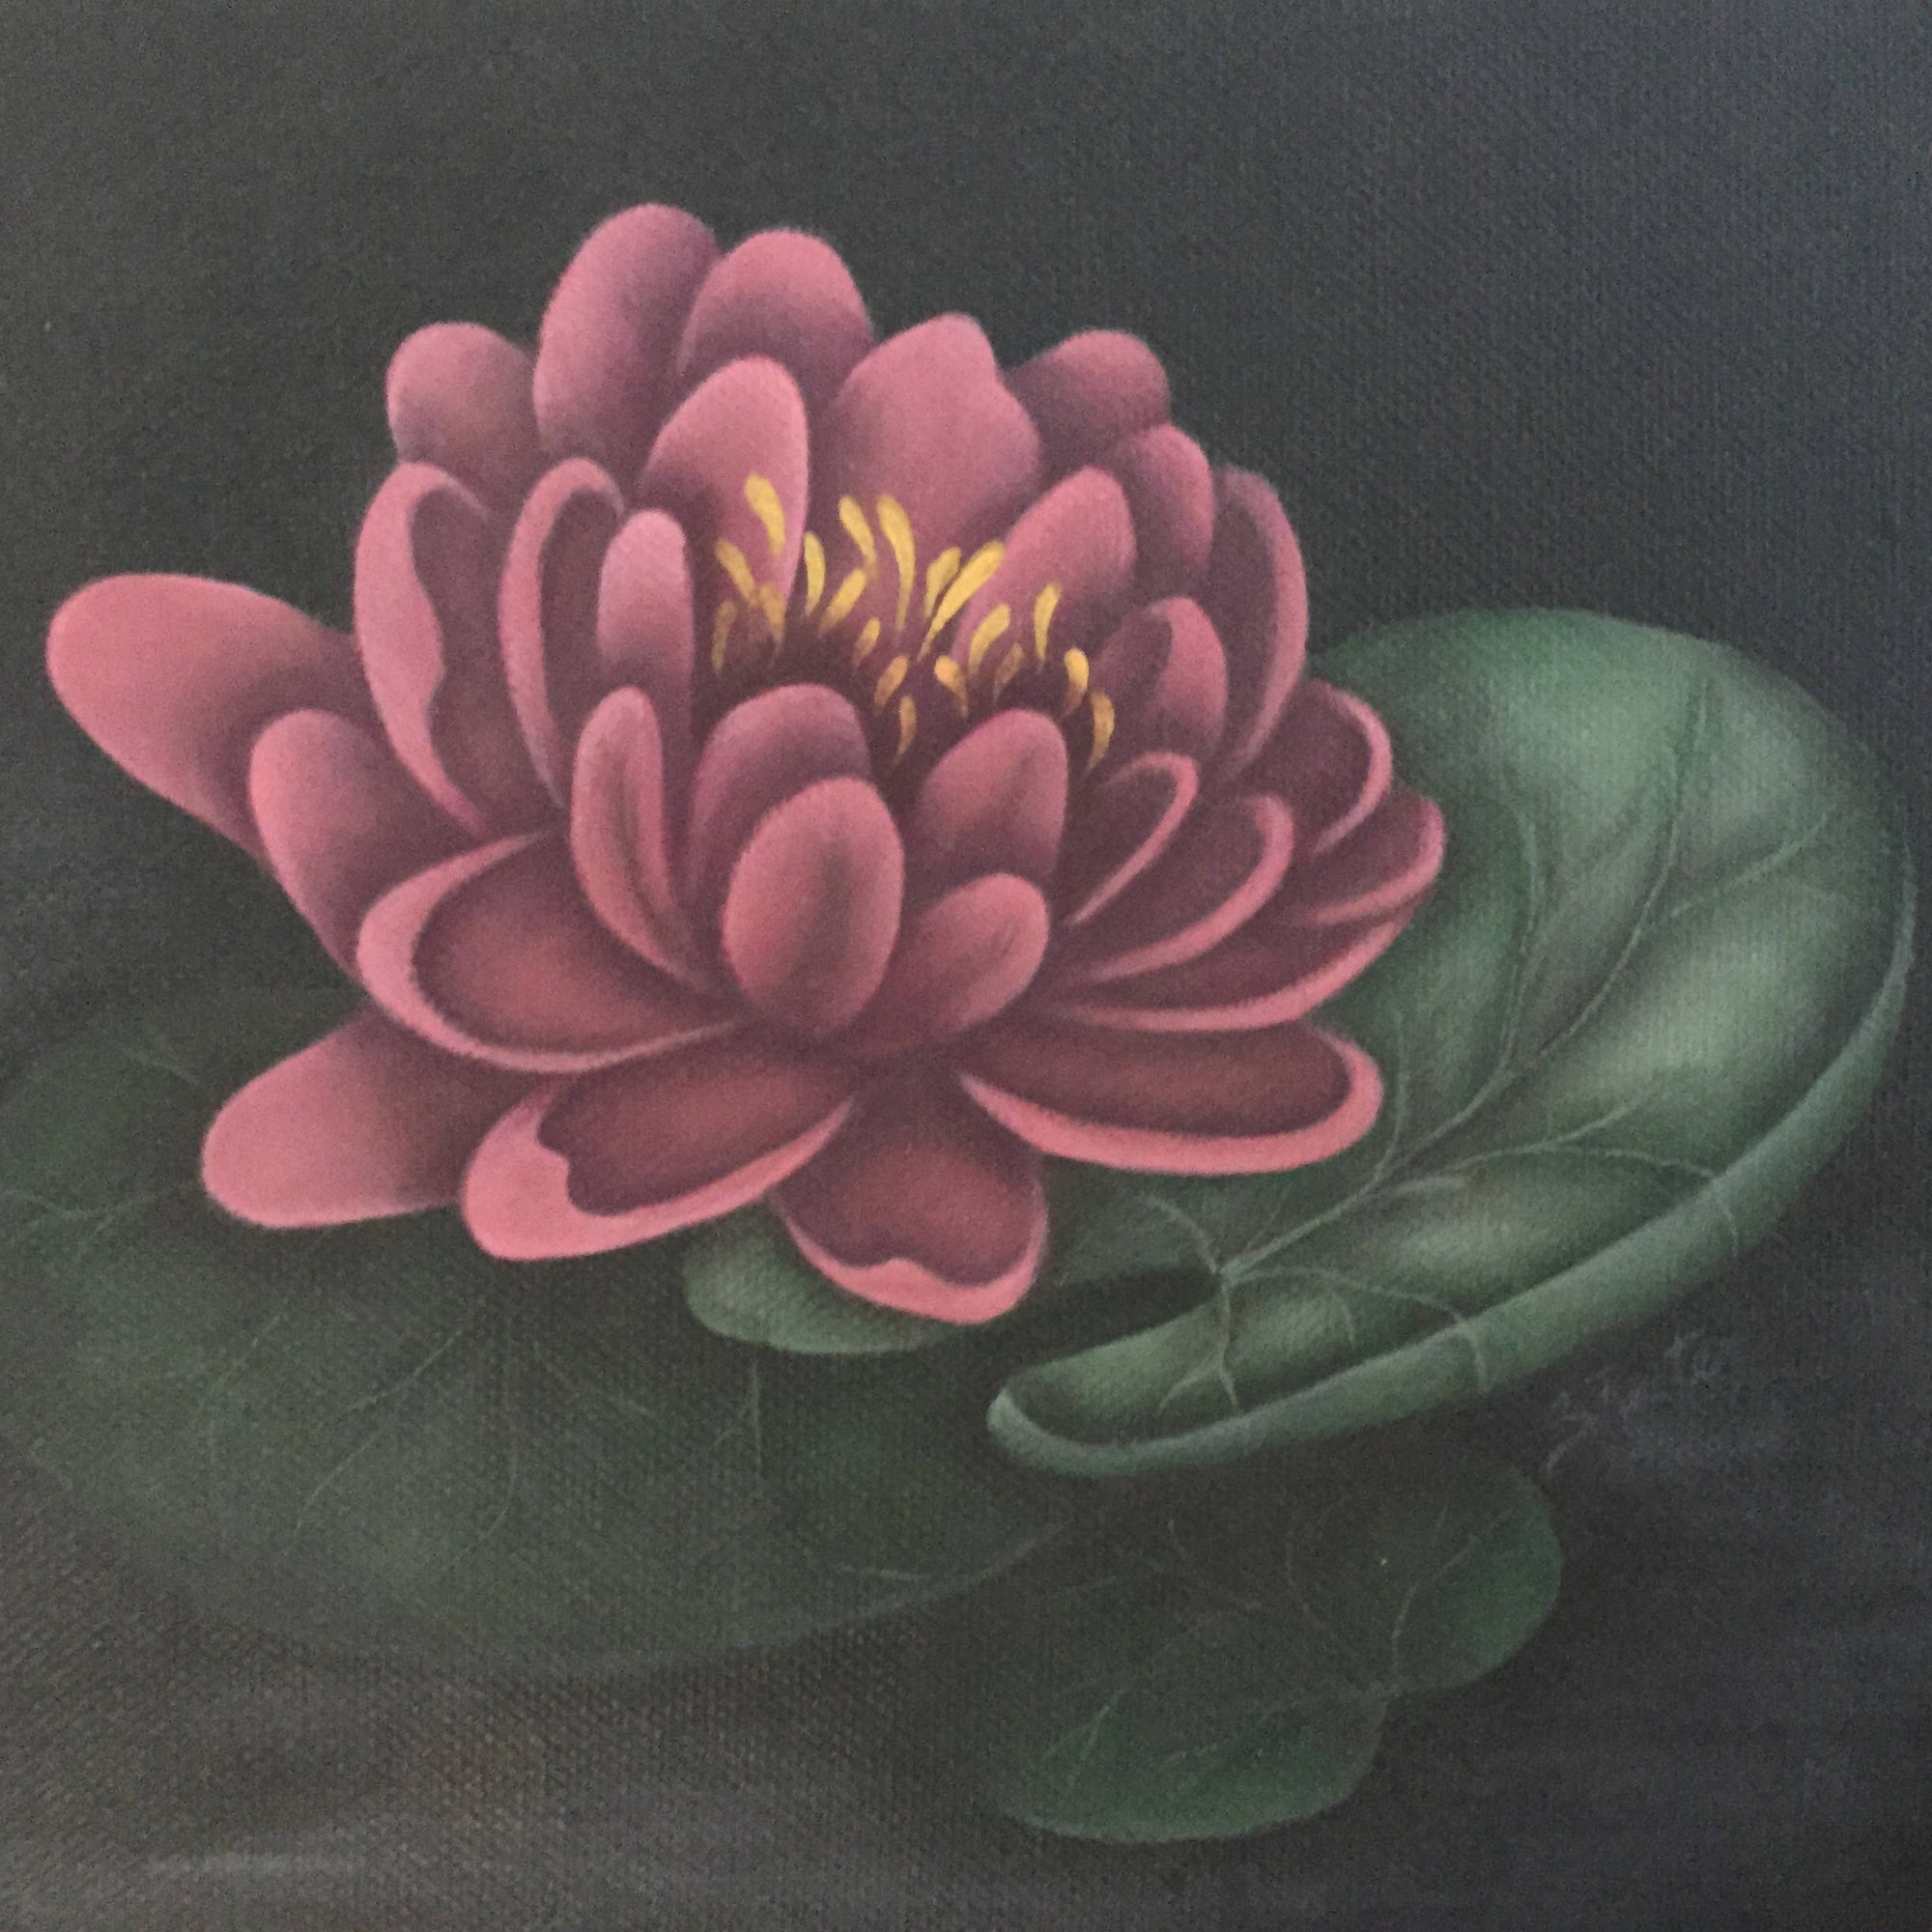 "A Small Square Canvas 8"" x 8"" with a Hand Painted Rose Coloured Water Lily"